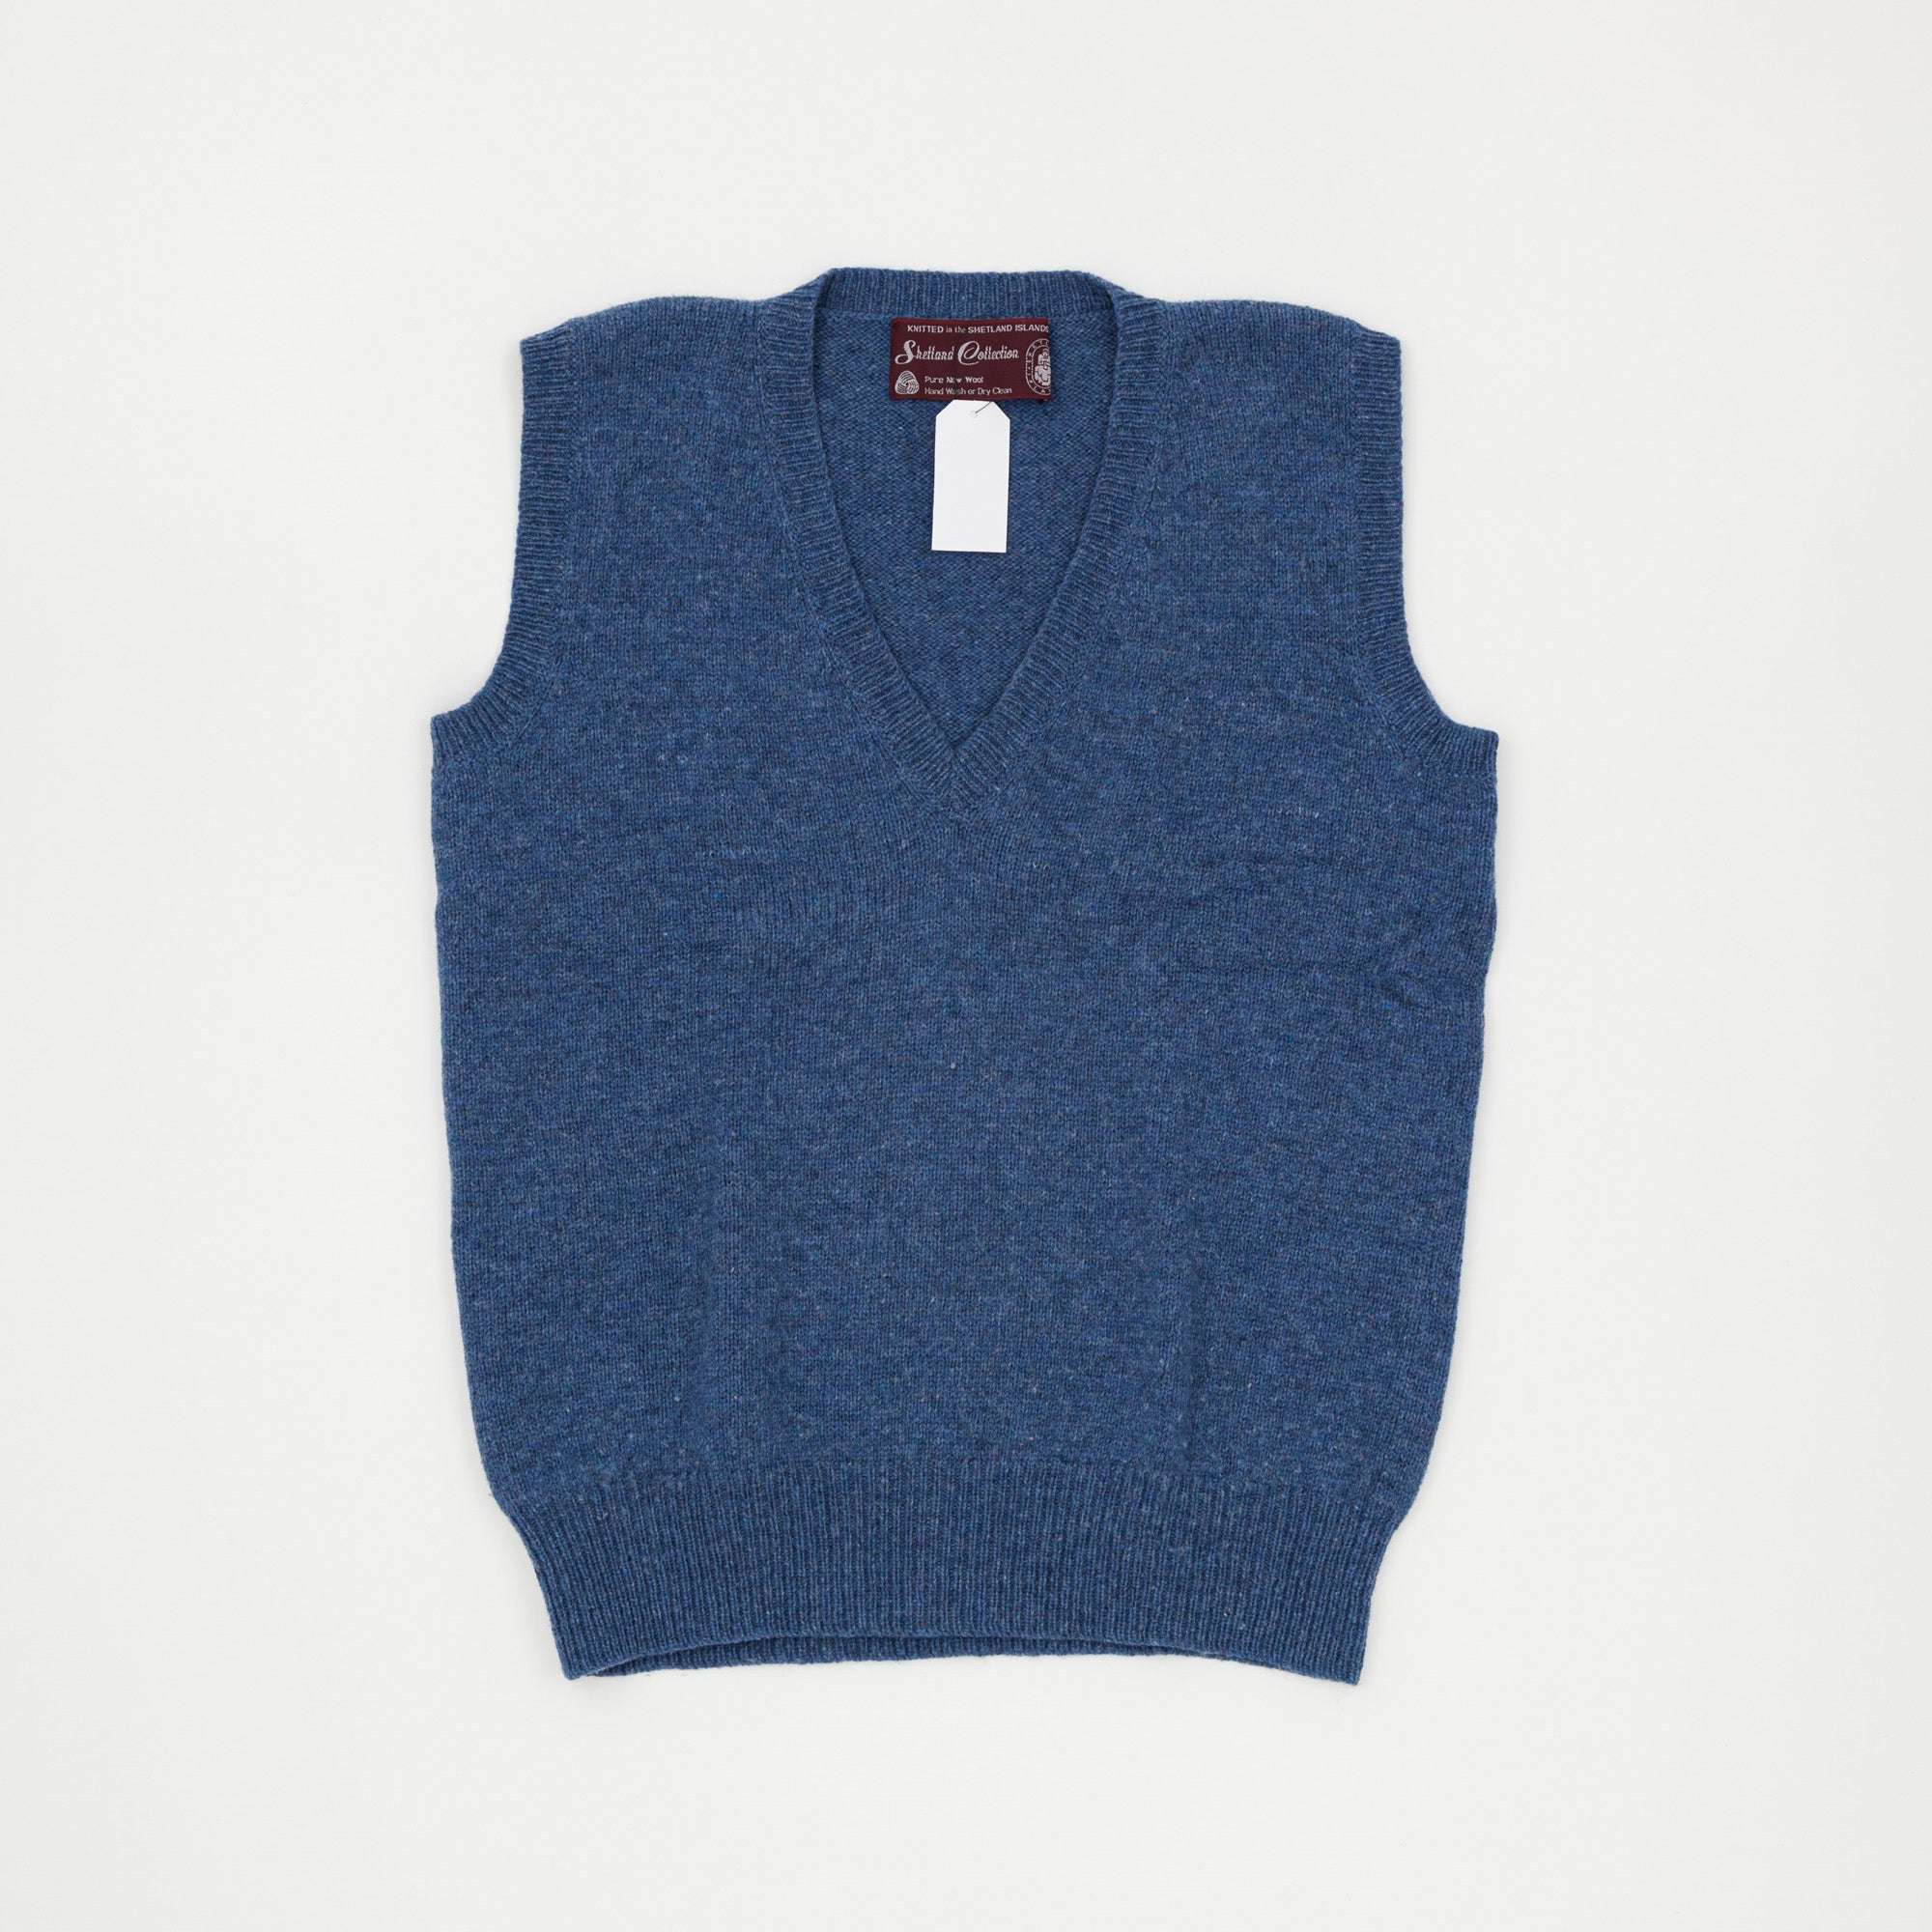 Shetland Collection Plain Sleeveless Sweater